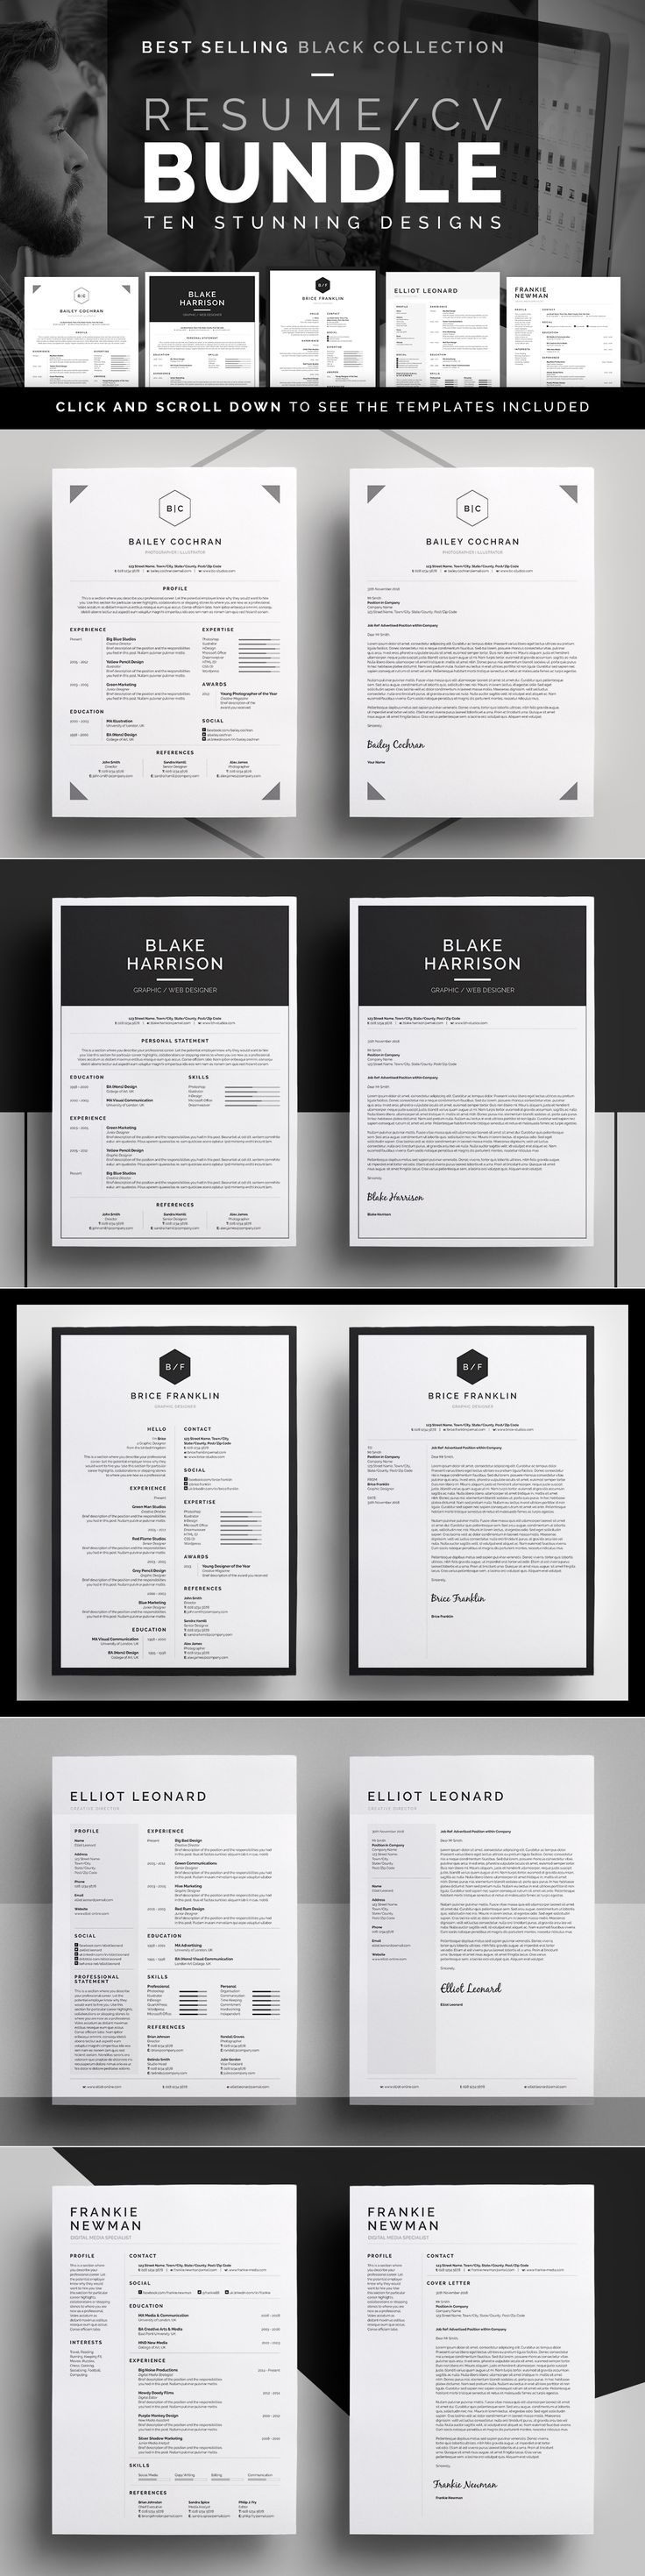 71 best CV images on Pinterest | Cv ideas, Design resume and Resume ...